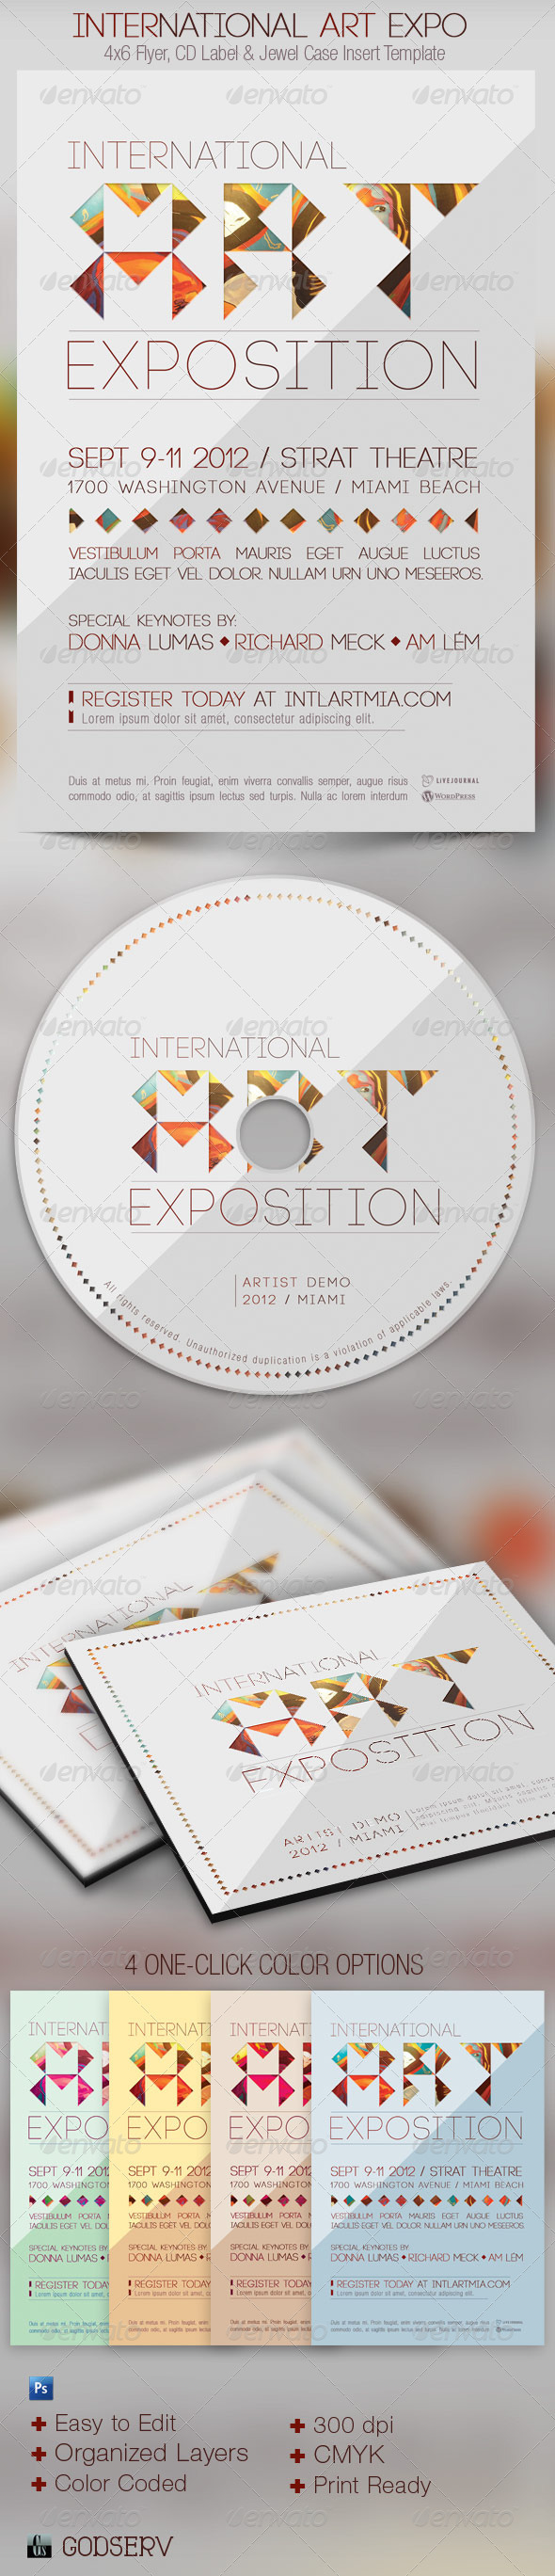 GraphicRiver International Art Expo Flyer and CD Template 2936107